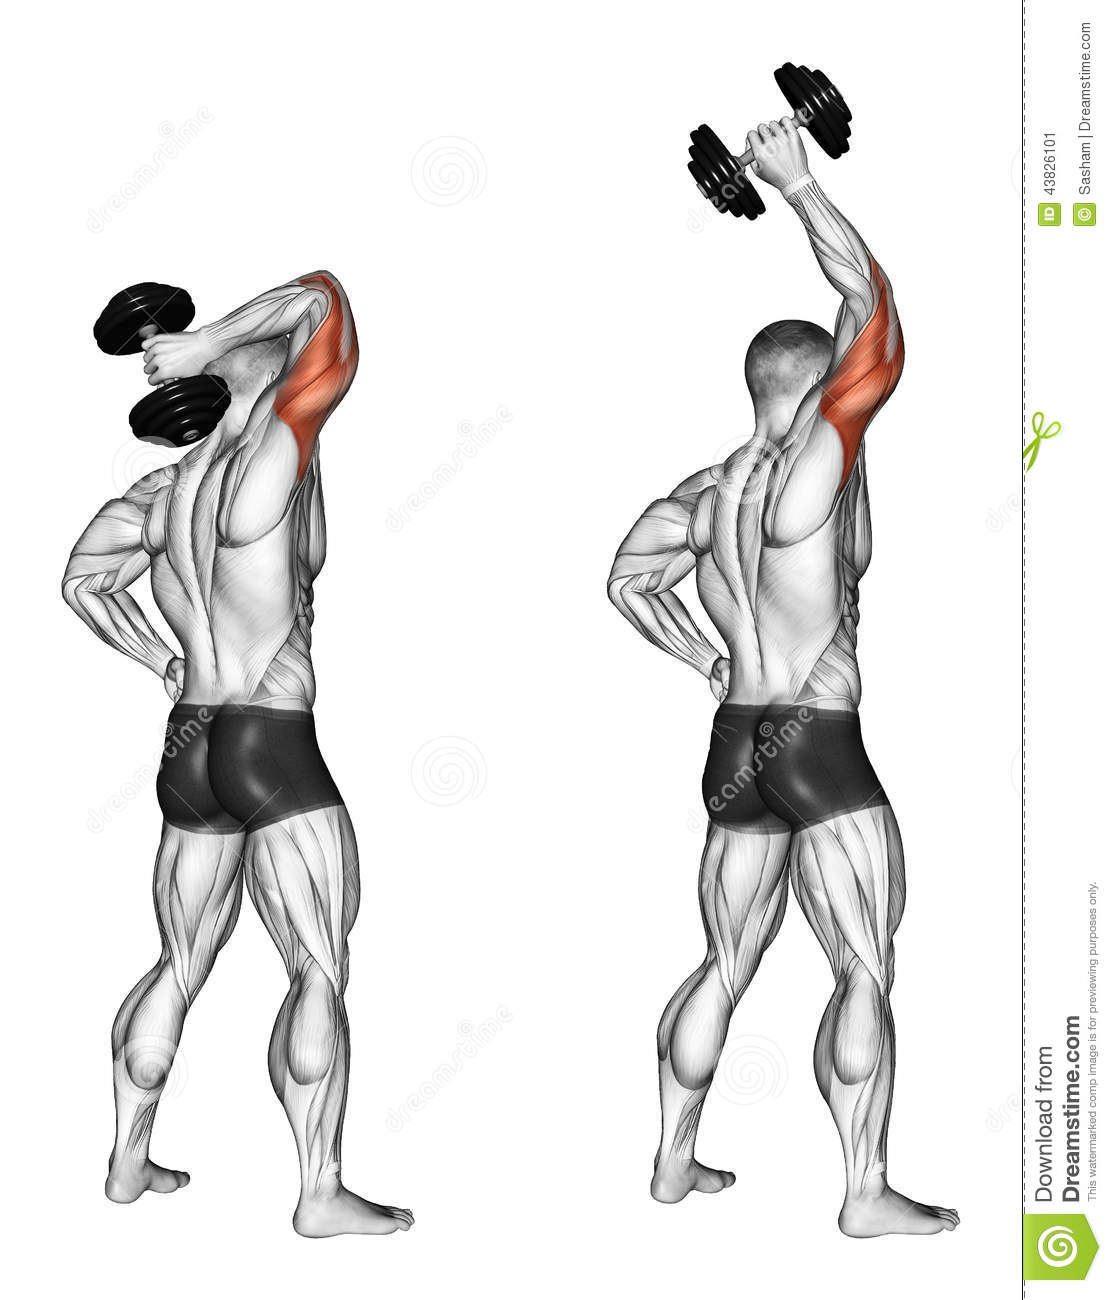 Exercising extension of one hand with a dumbbell stock